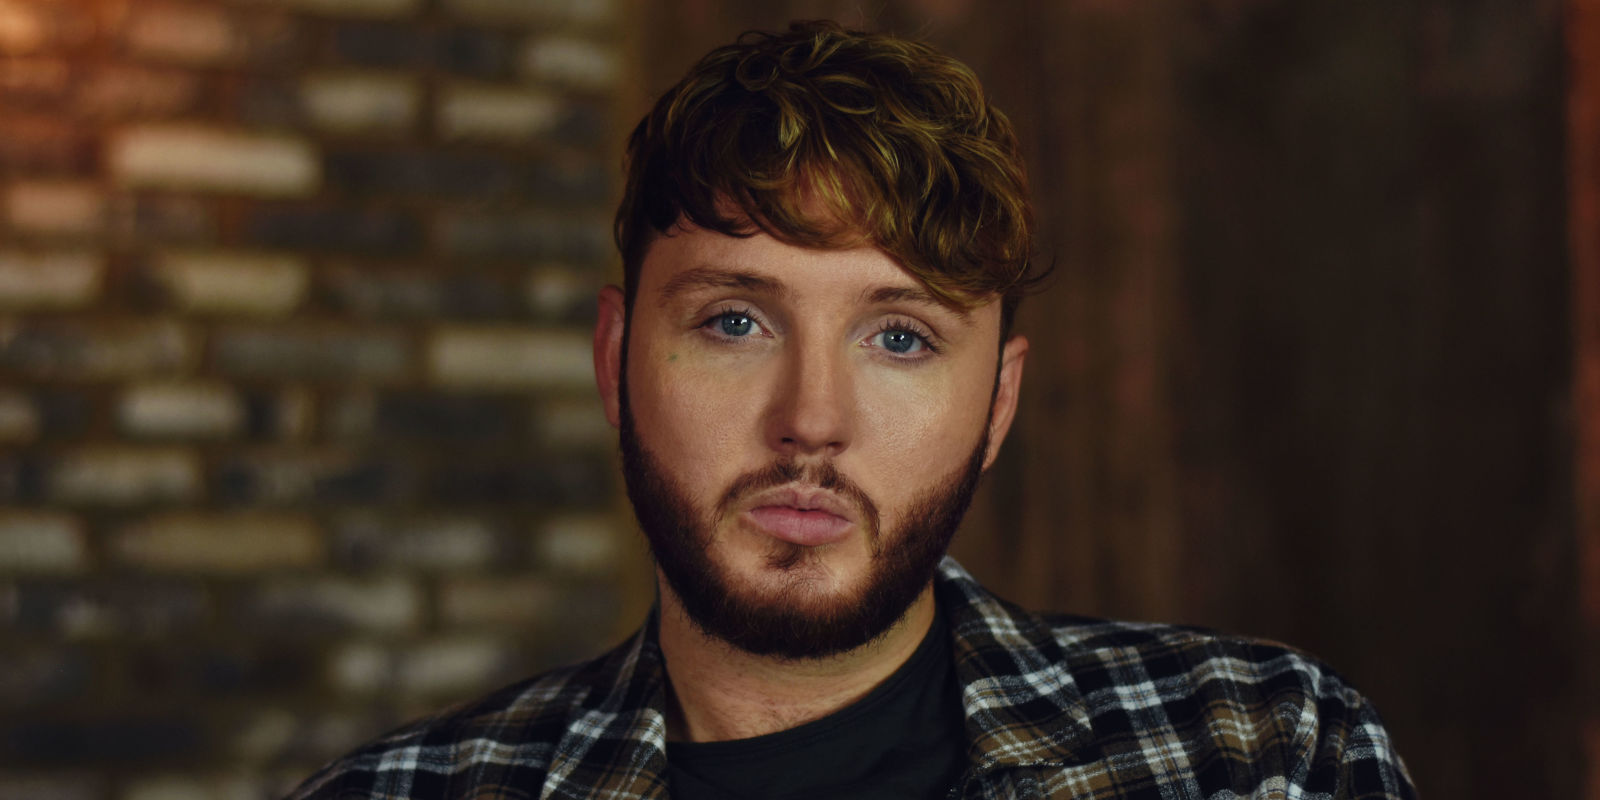 James arthur dating made in chelsea star 10